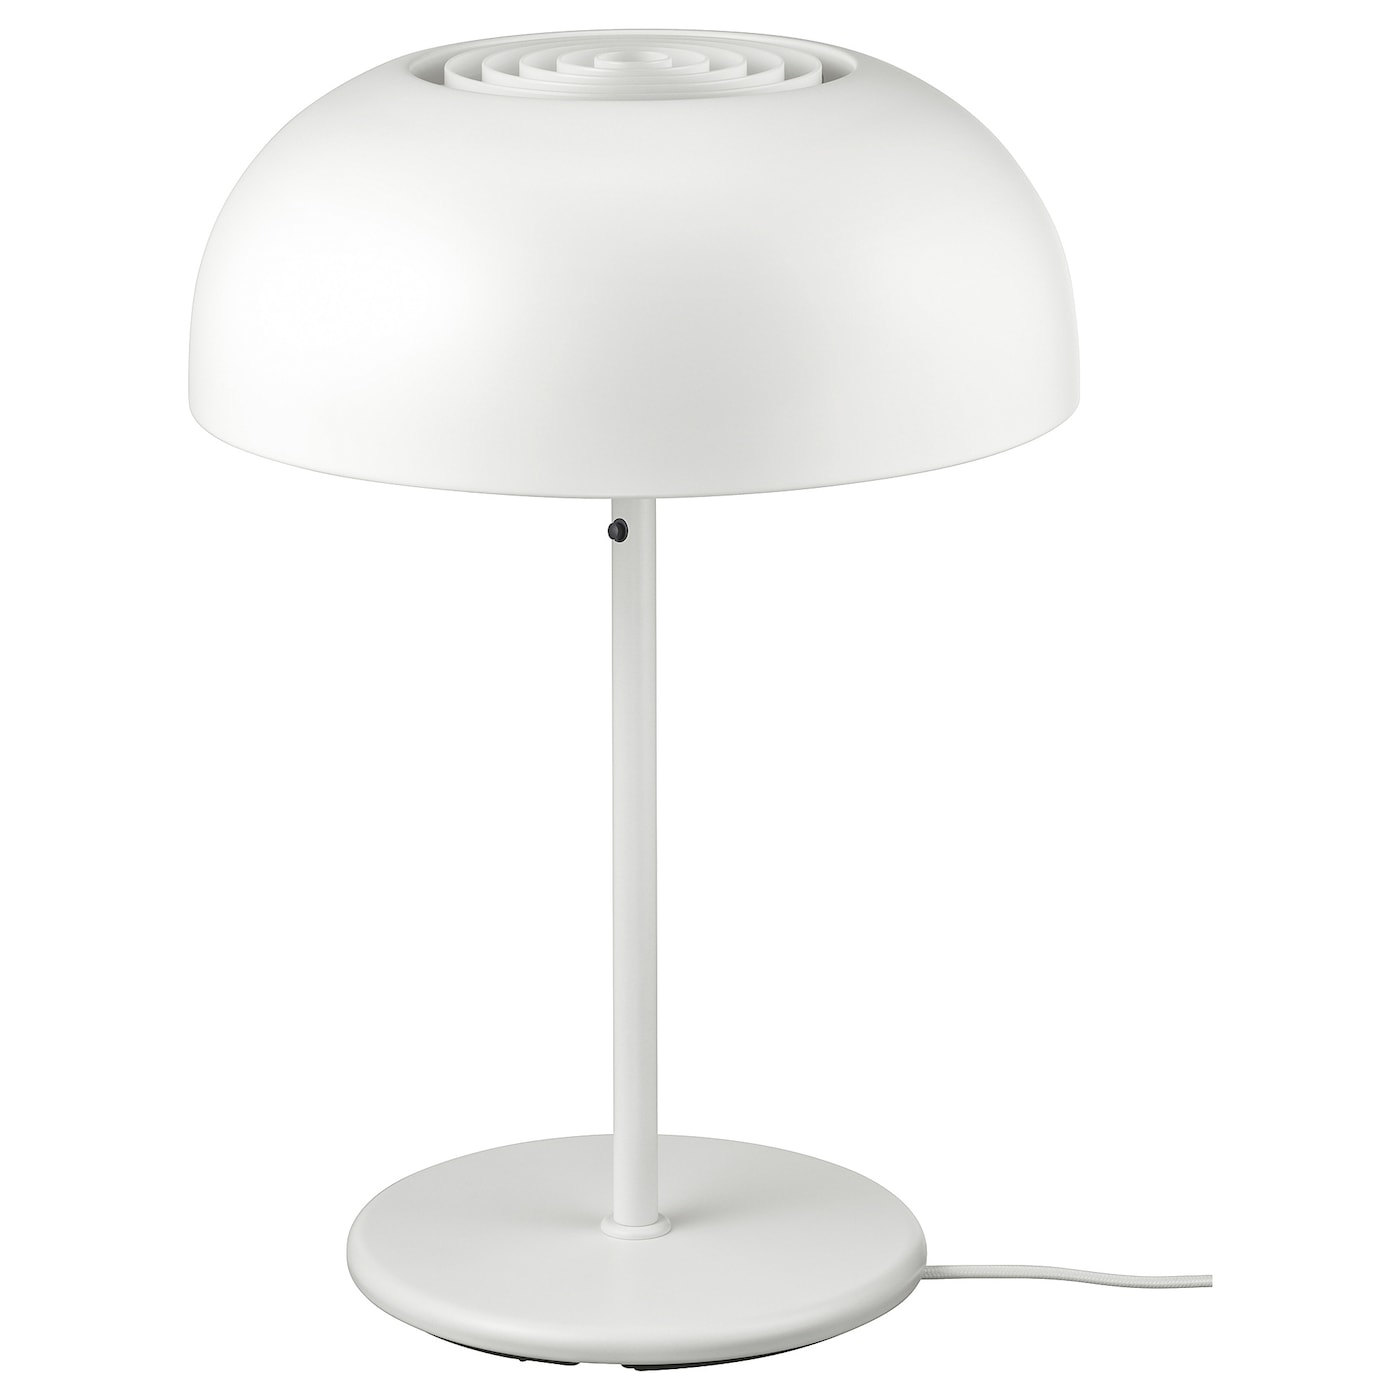 IKEA NYMÅNE table lamp